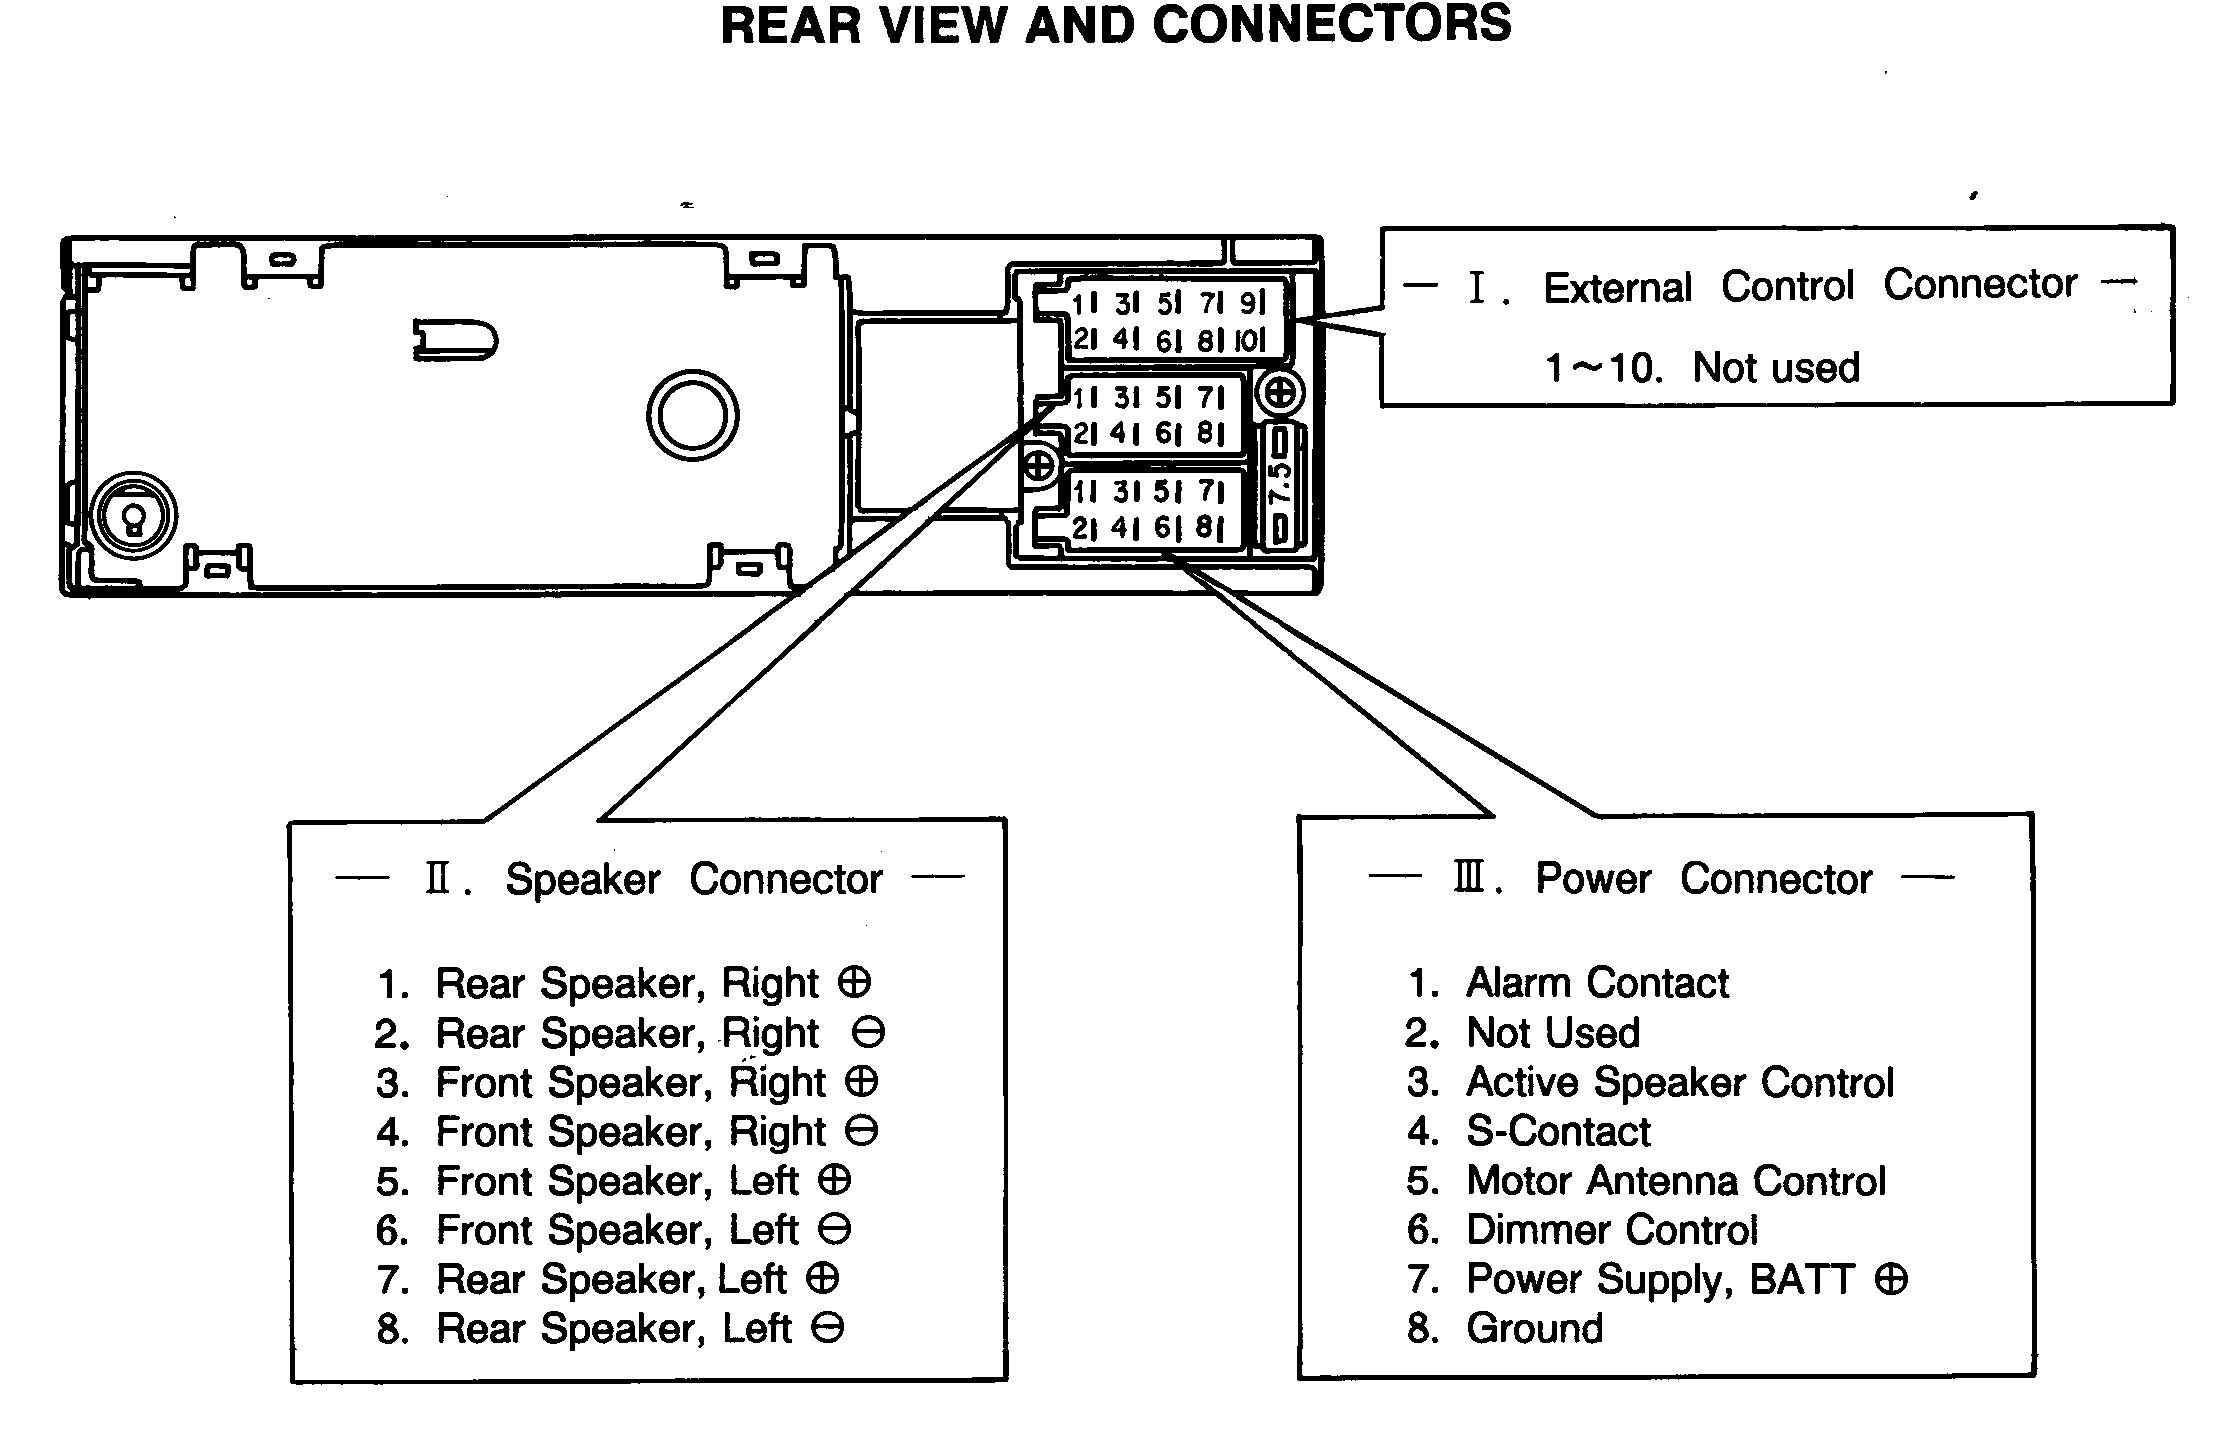 Wiring Diagram for Car Audio System Honda Stereo Wiring Diagram Blurts Of Wiring Diagram for Car Audio System